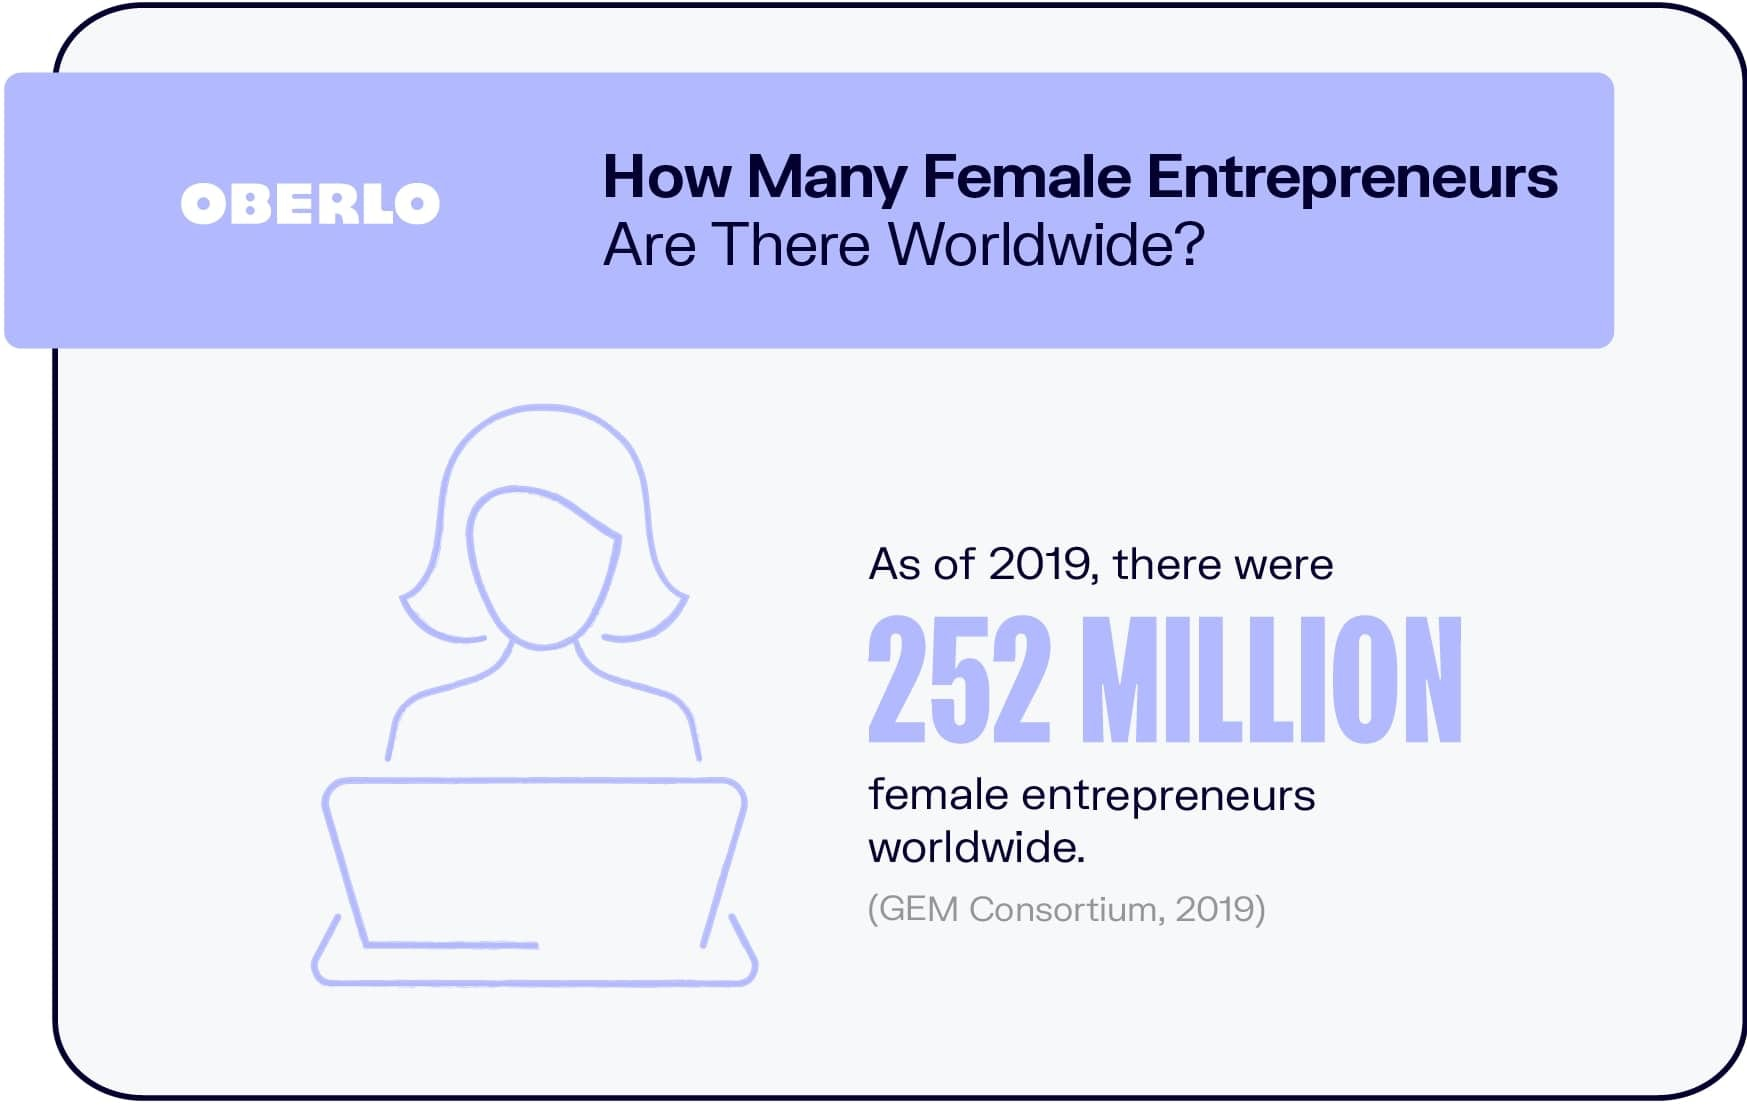 How Many Female Entrepreneurs Are There Worldwide?